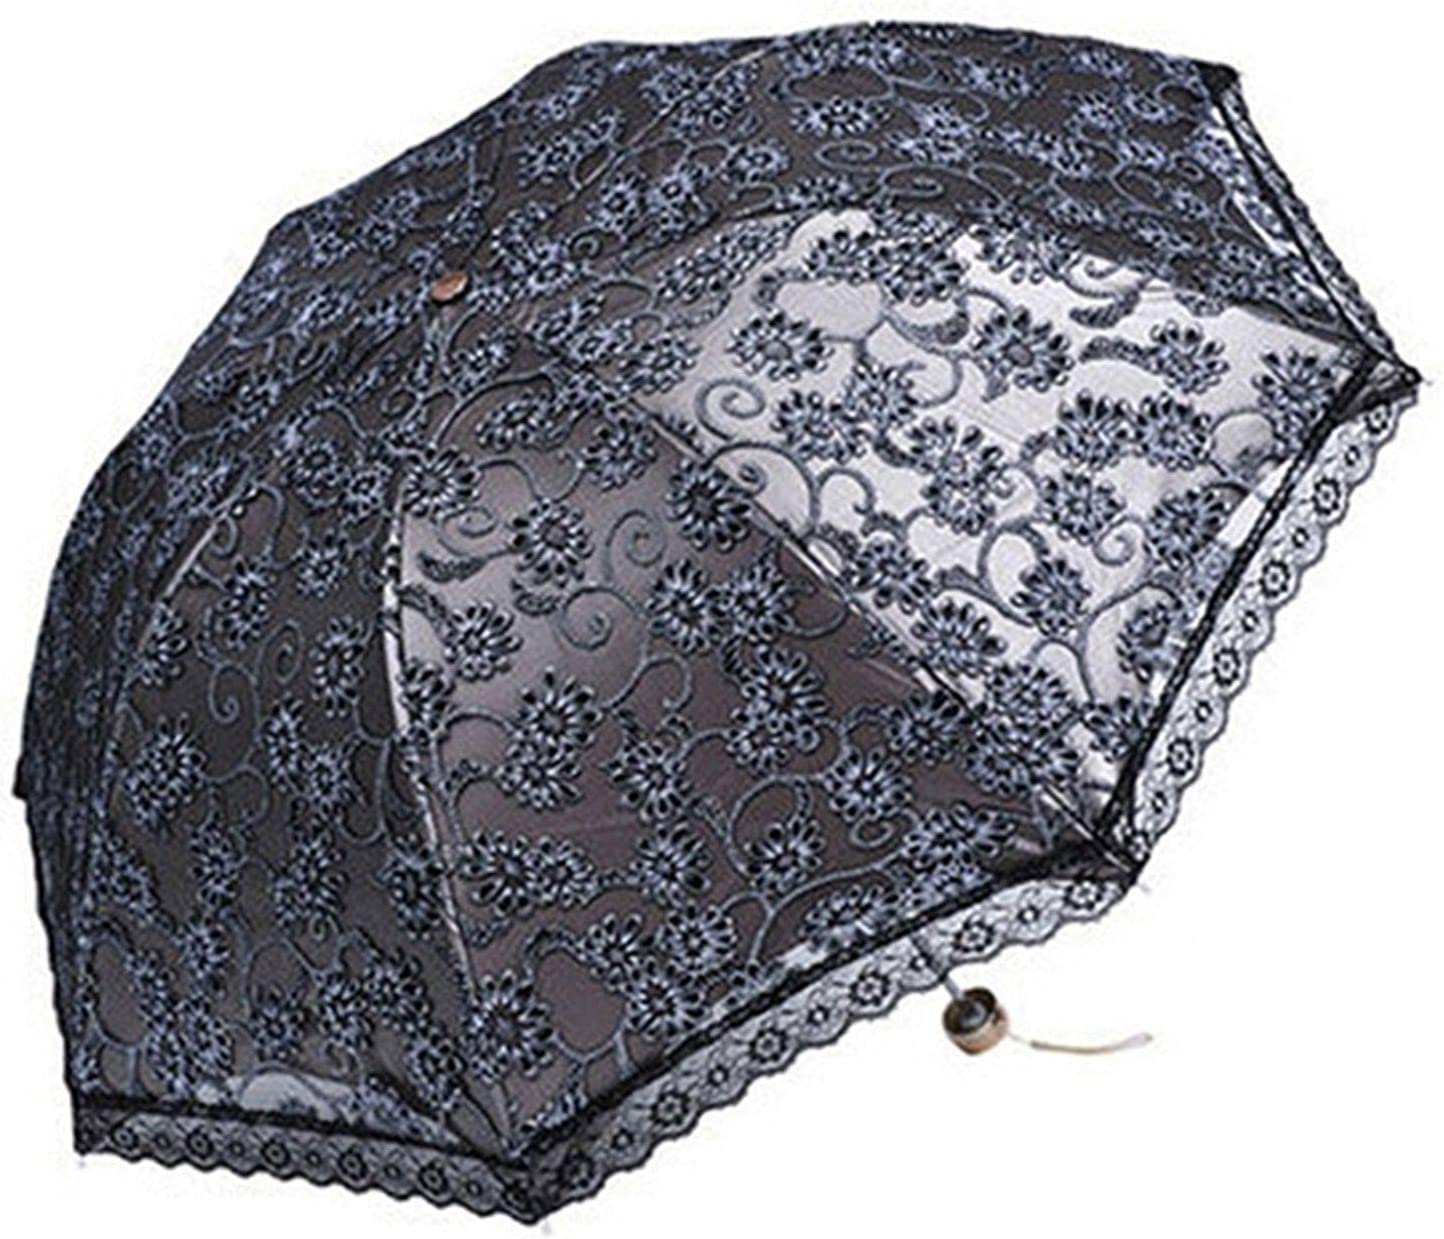 Gray Compact Lace Wedding Parasol Folding Travel Sun Umbrella Uv Block ,Gray